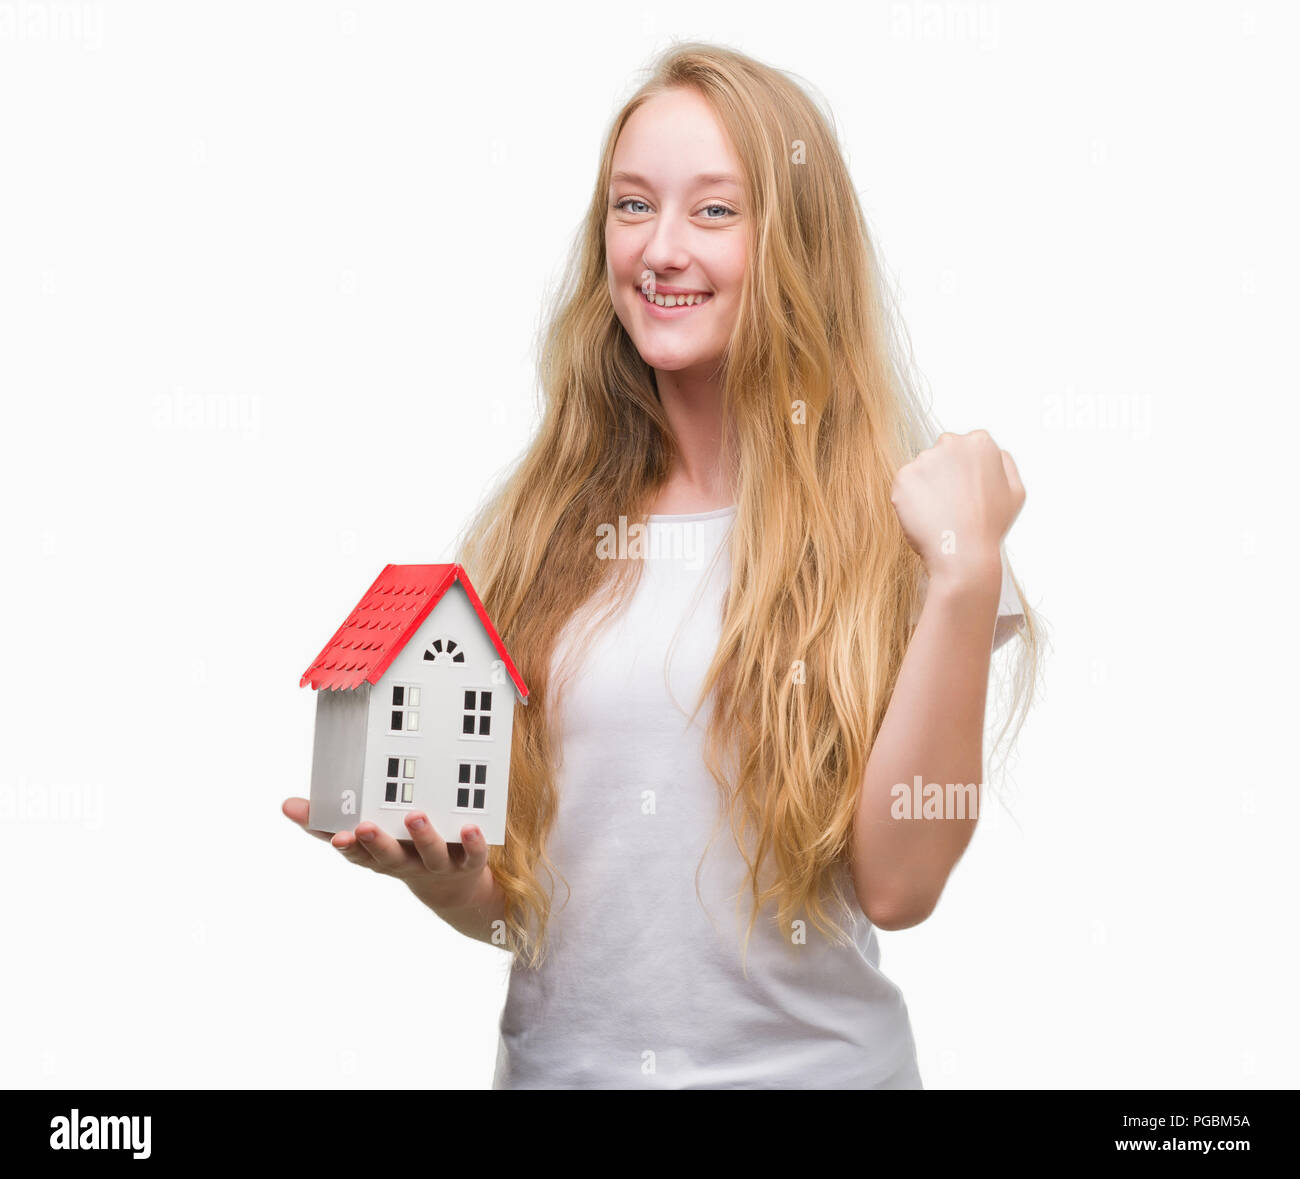 Blonde teenager woman holding family house screaming proud and celebrating victory and success very excited, cheering emotion - Stock Image